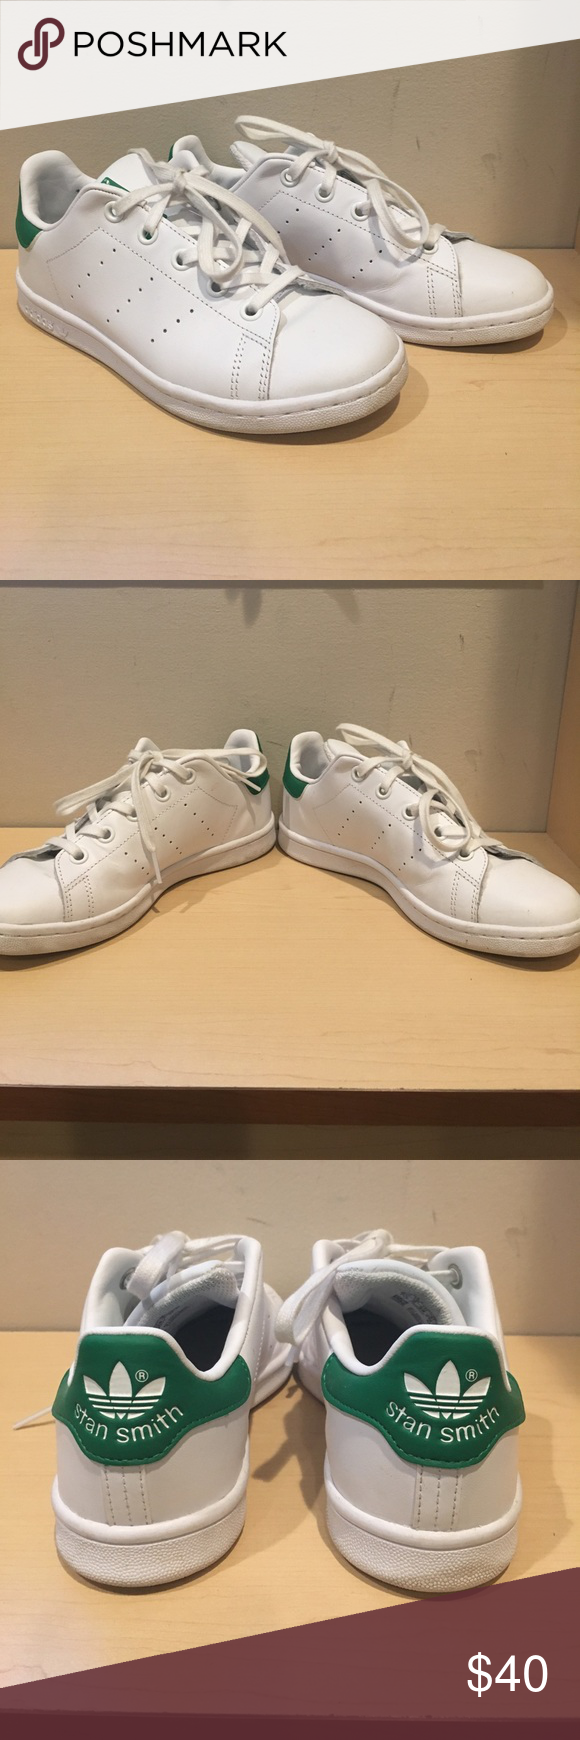 190bee4f3529 Adidas Women s Stan Smith White Green 2 1 2 Pair of the classic Women s  Adidas